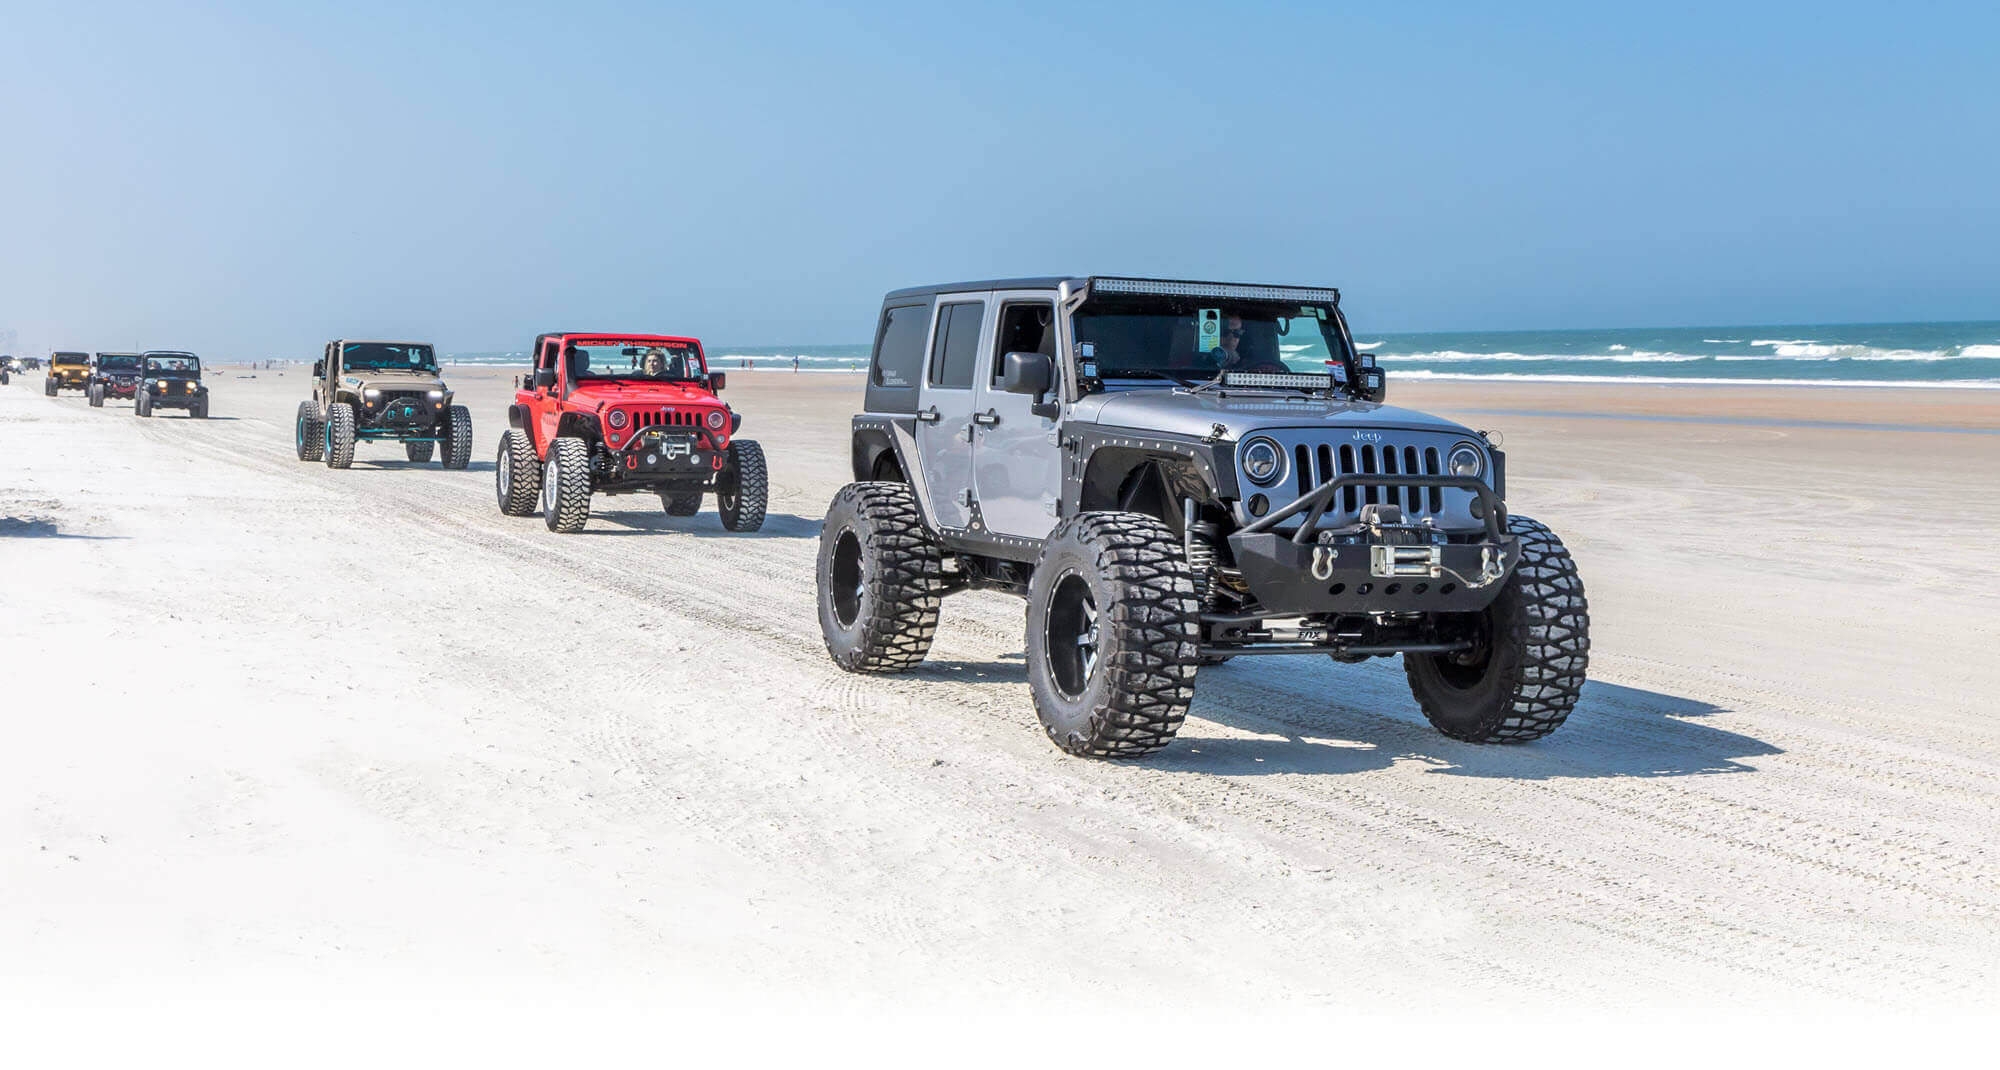 Jeep Beach Daytona Fl